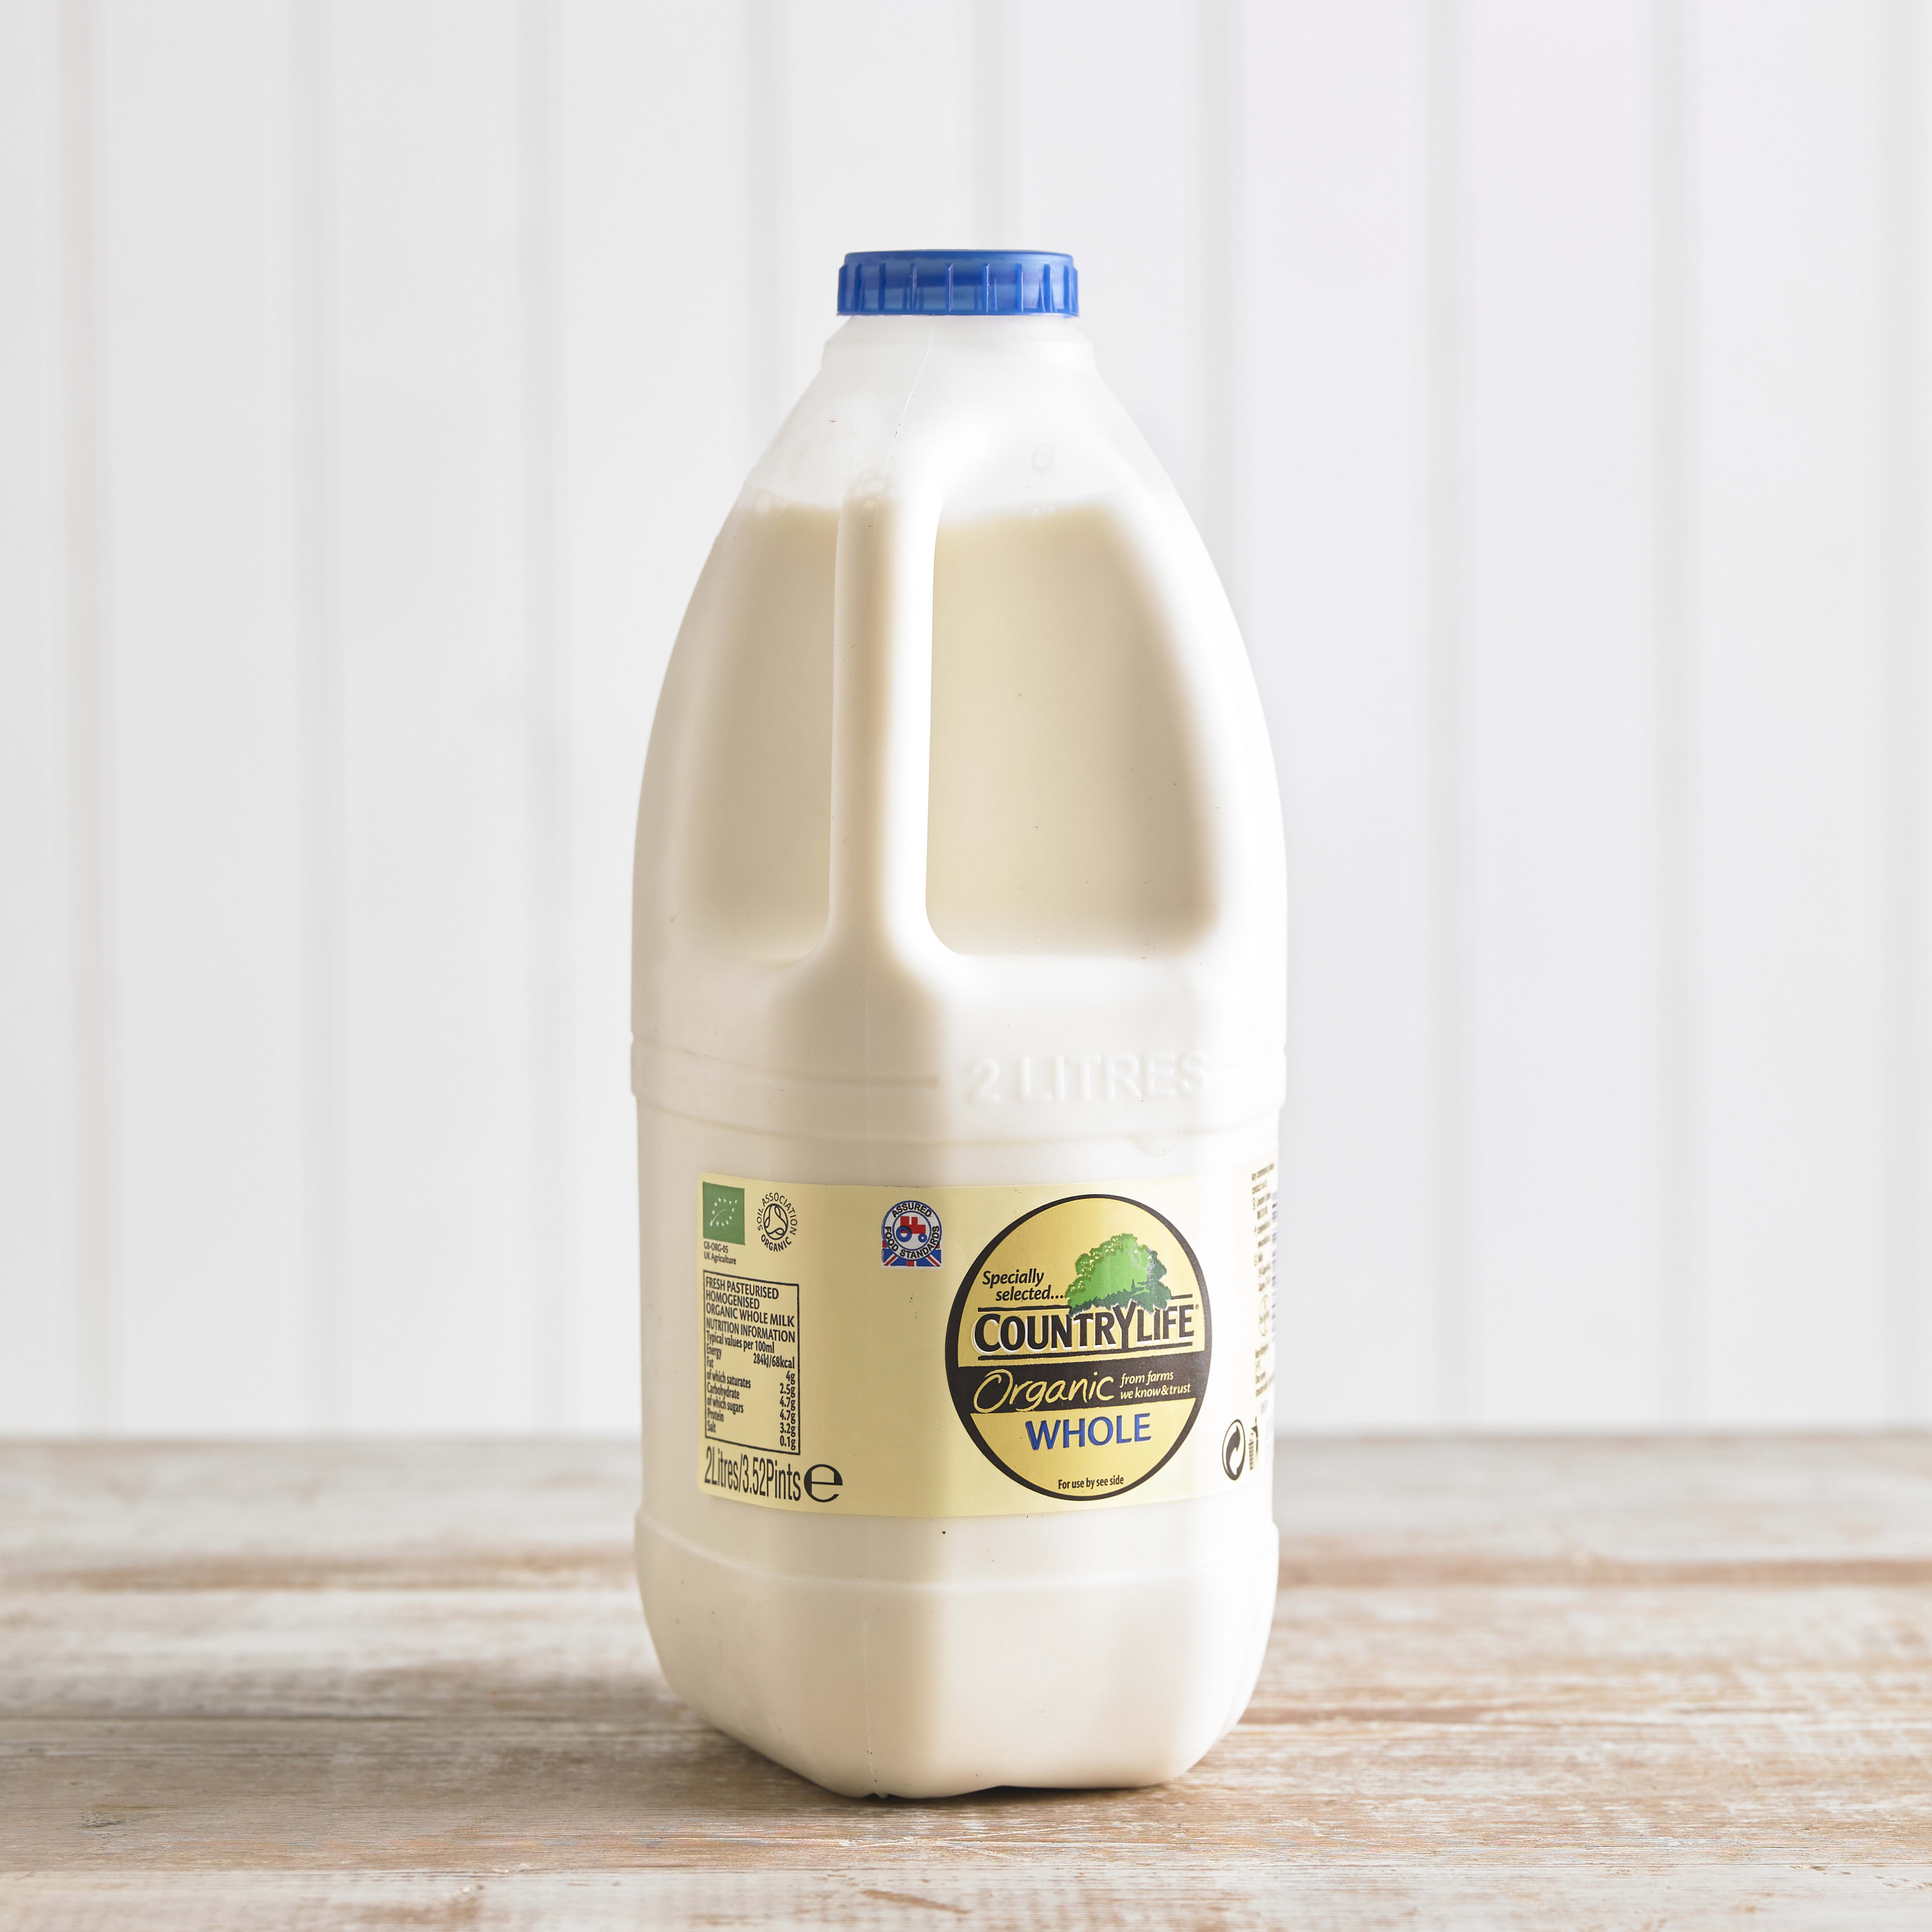 Country Life Organic Whole Milk, 2L